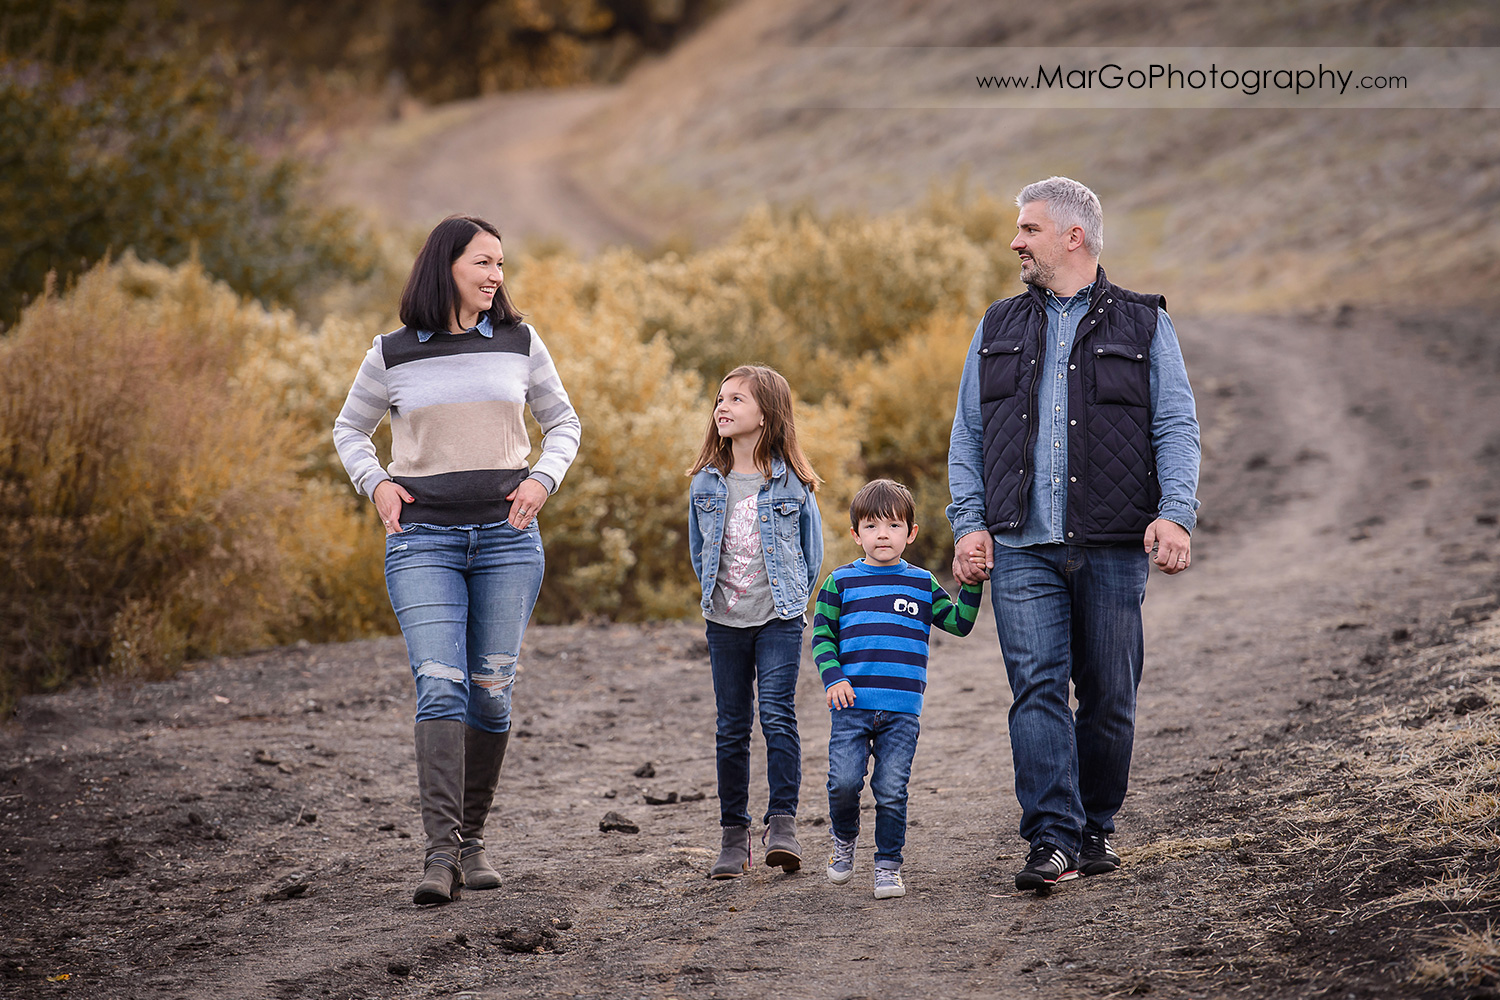 family of four wearing blue and grey clothes looking at each other and walking down the hill during photo session at Diablo Foothills Regional Park in Walnut Creek